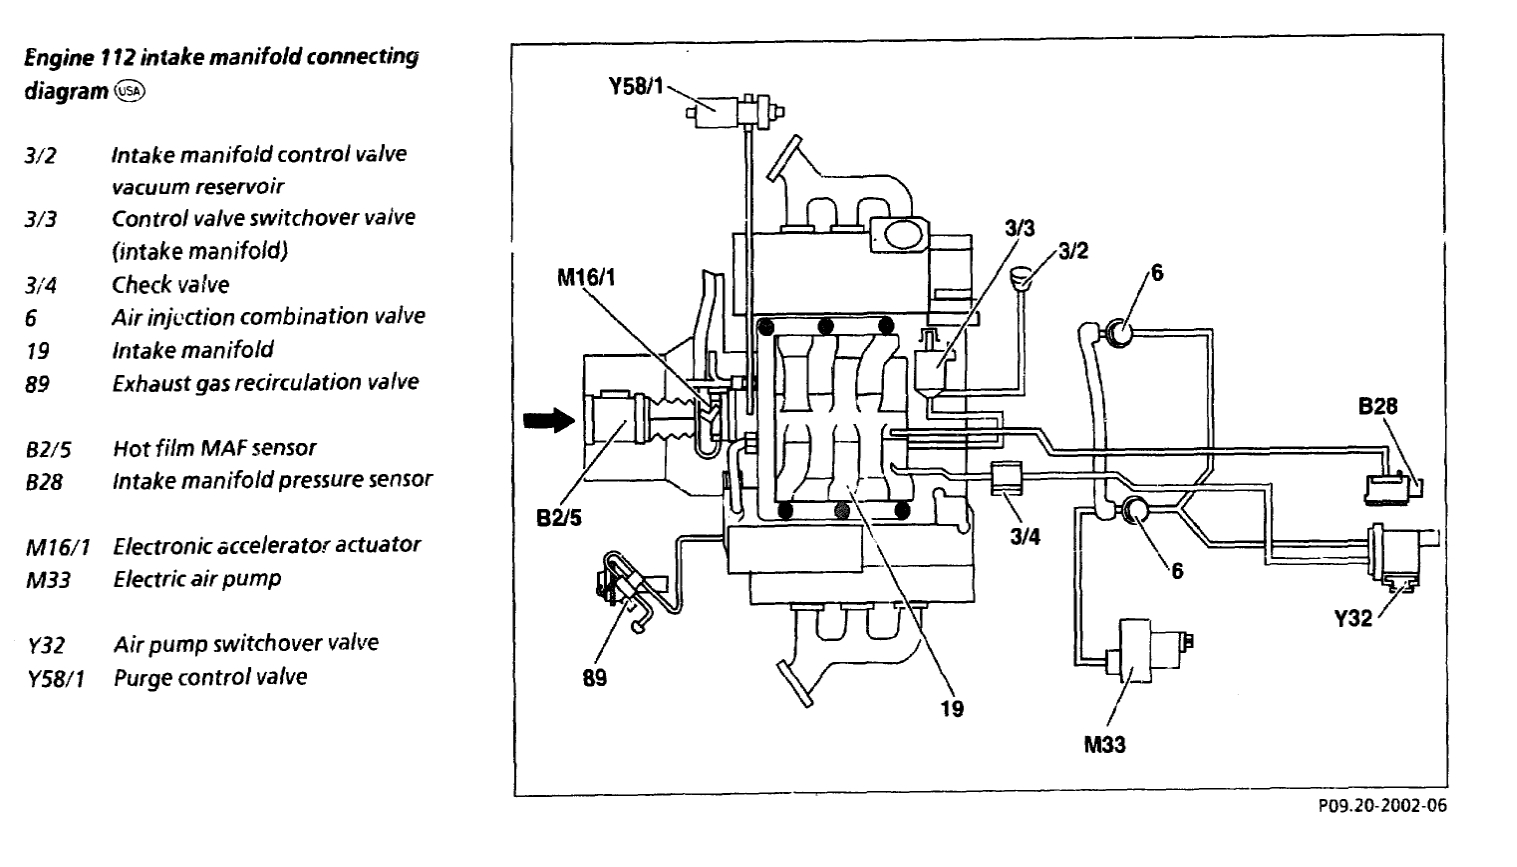 hight resolution of 1999 mercedes benz ml320 engine diagram wiring diagram used ml 320 wiring diagram